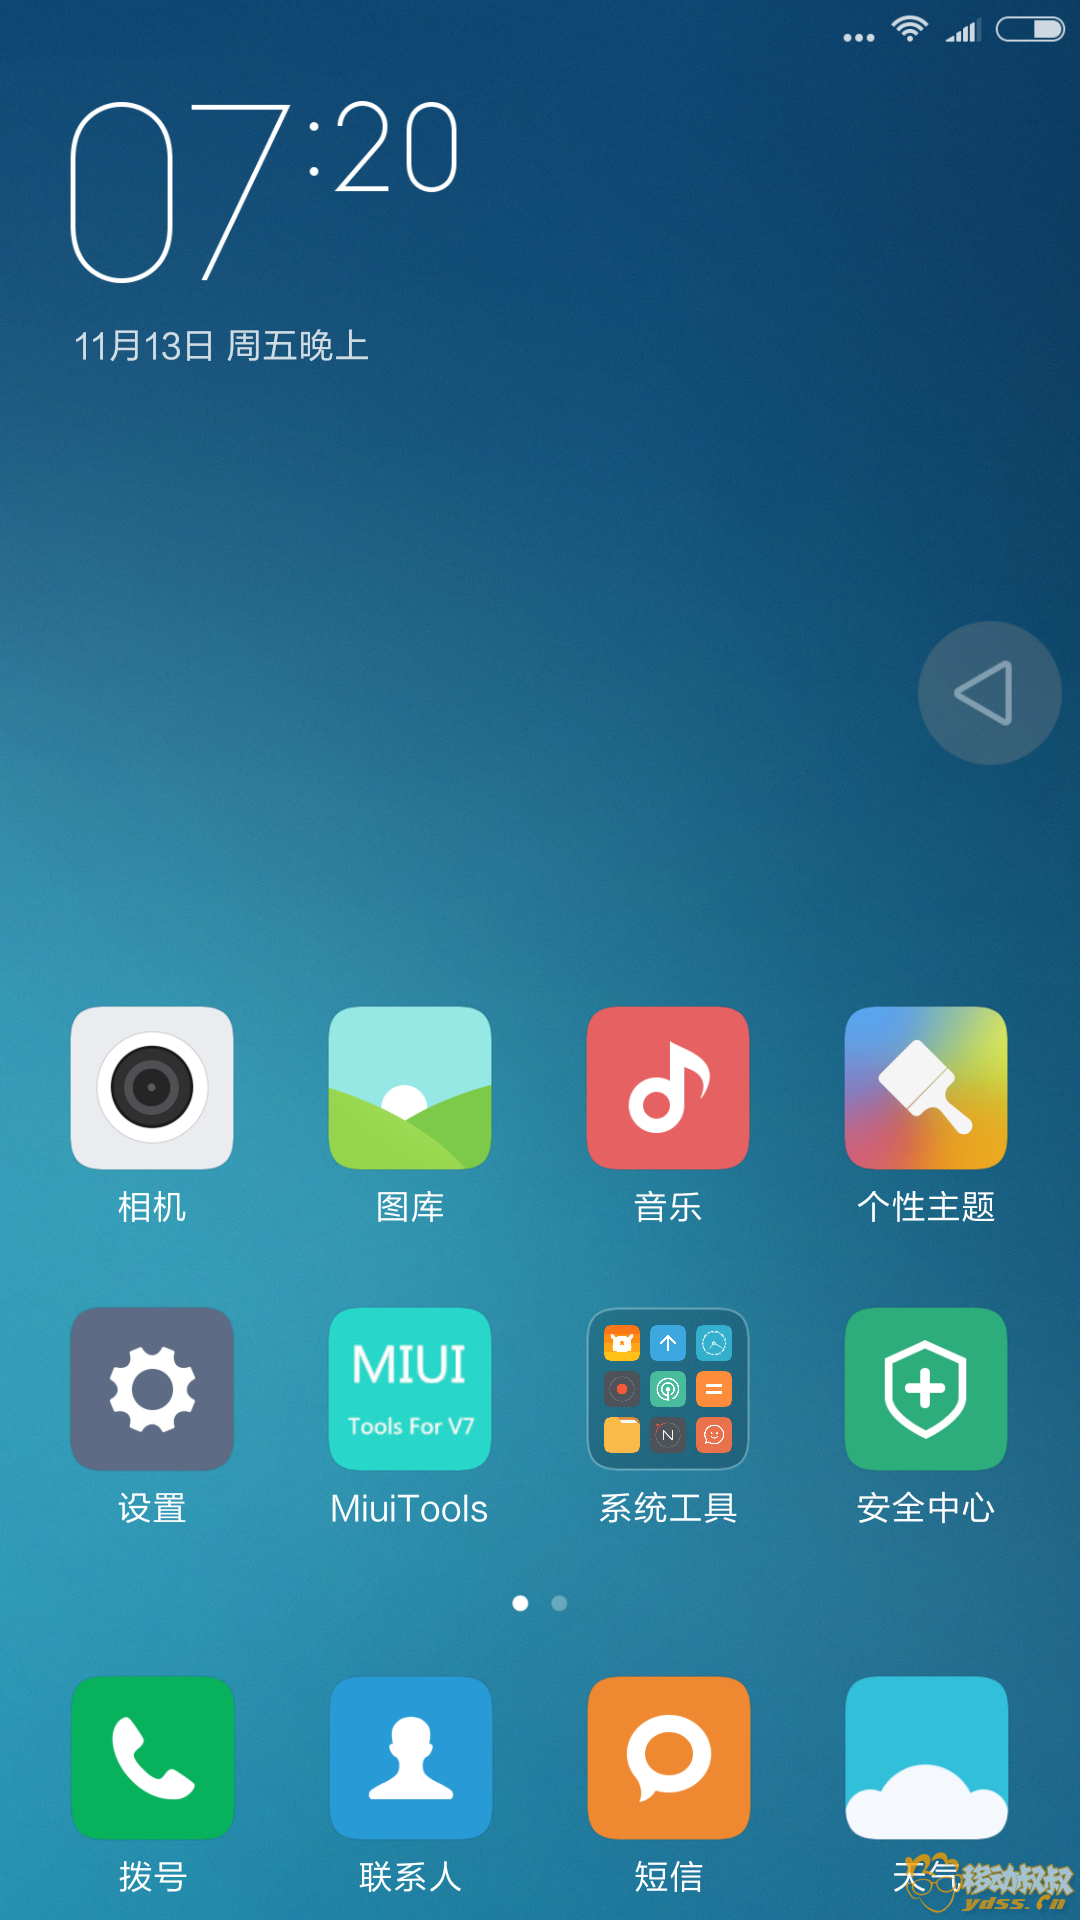 Screenshot_2015-11-13-19-20-06_com.miui.home.png